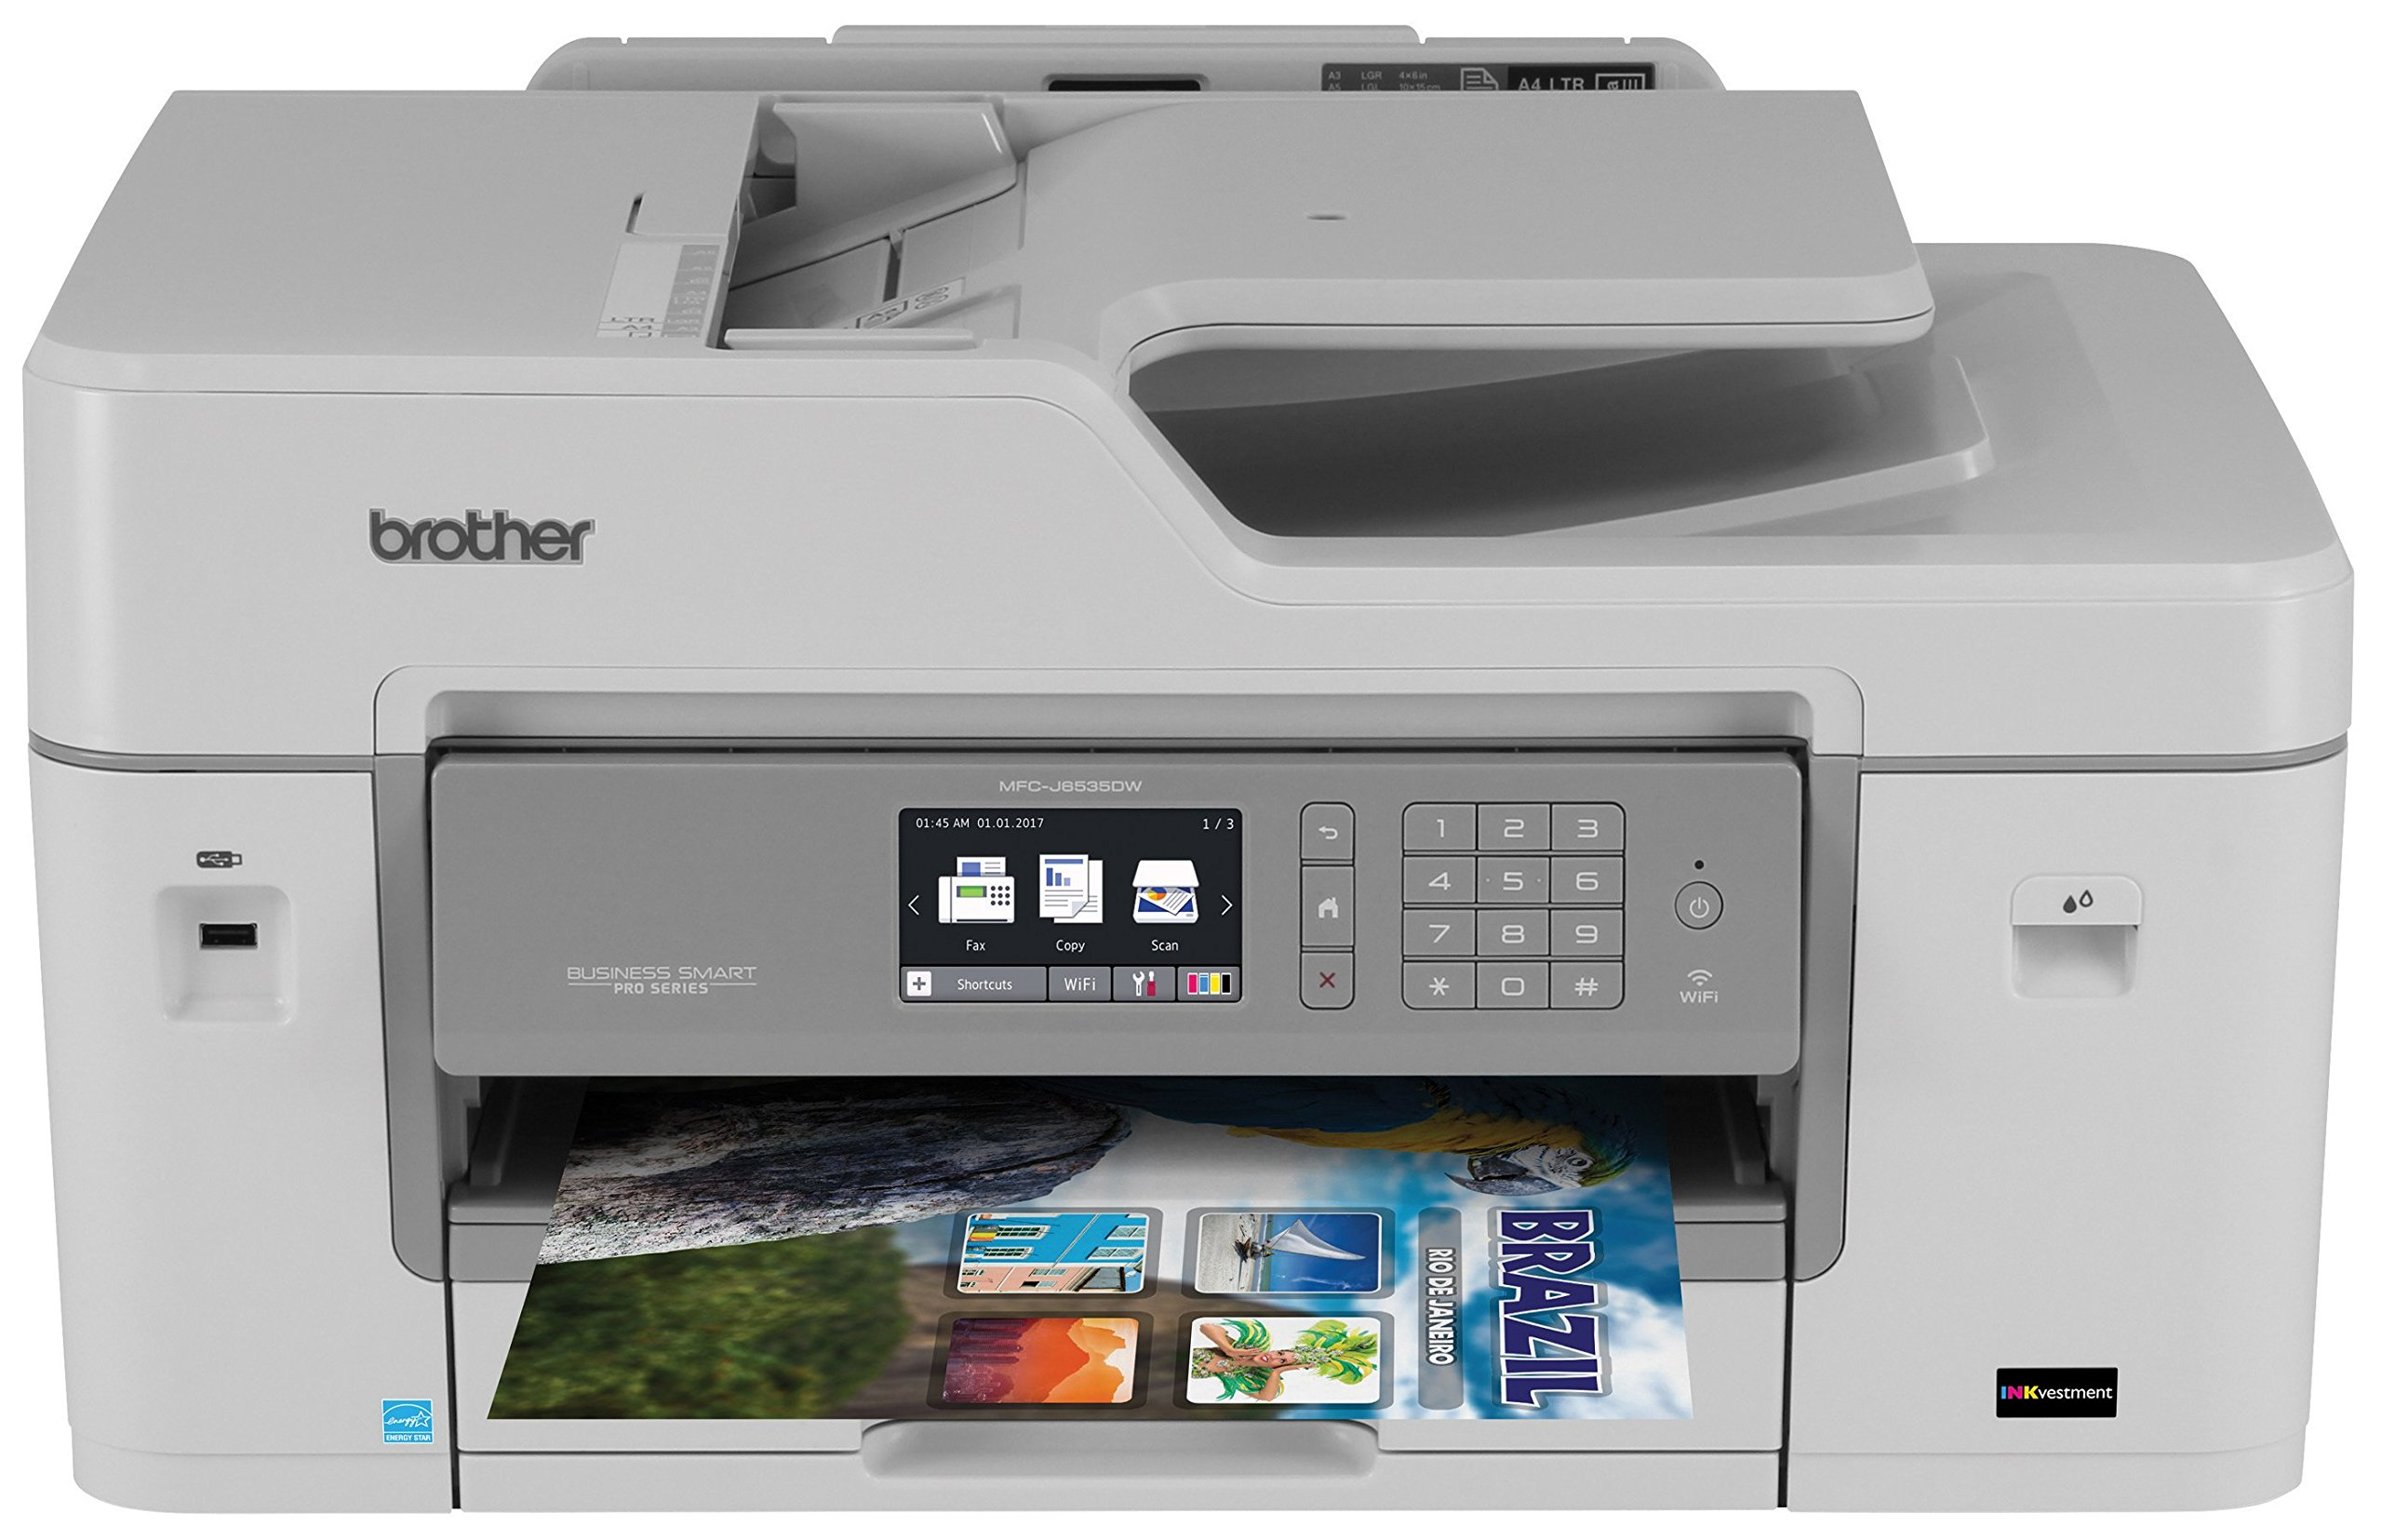 Brother Printer RMFCJ6535DW Refurbished Business Smart Pro with INKvestment Cartridges